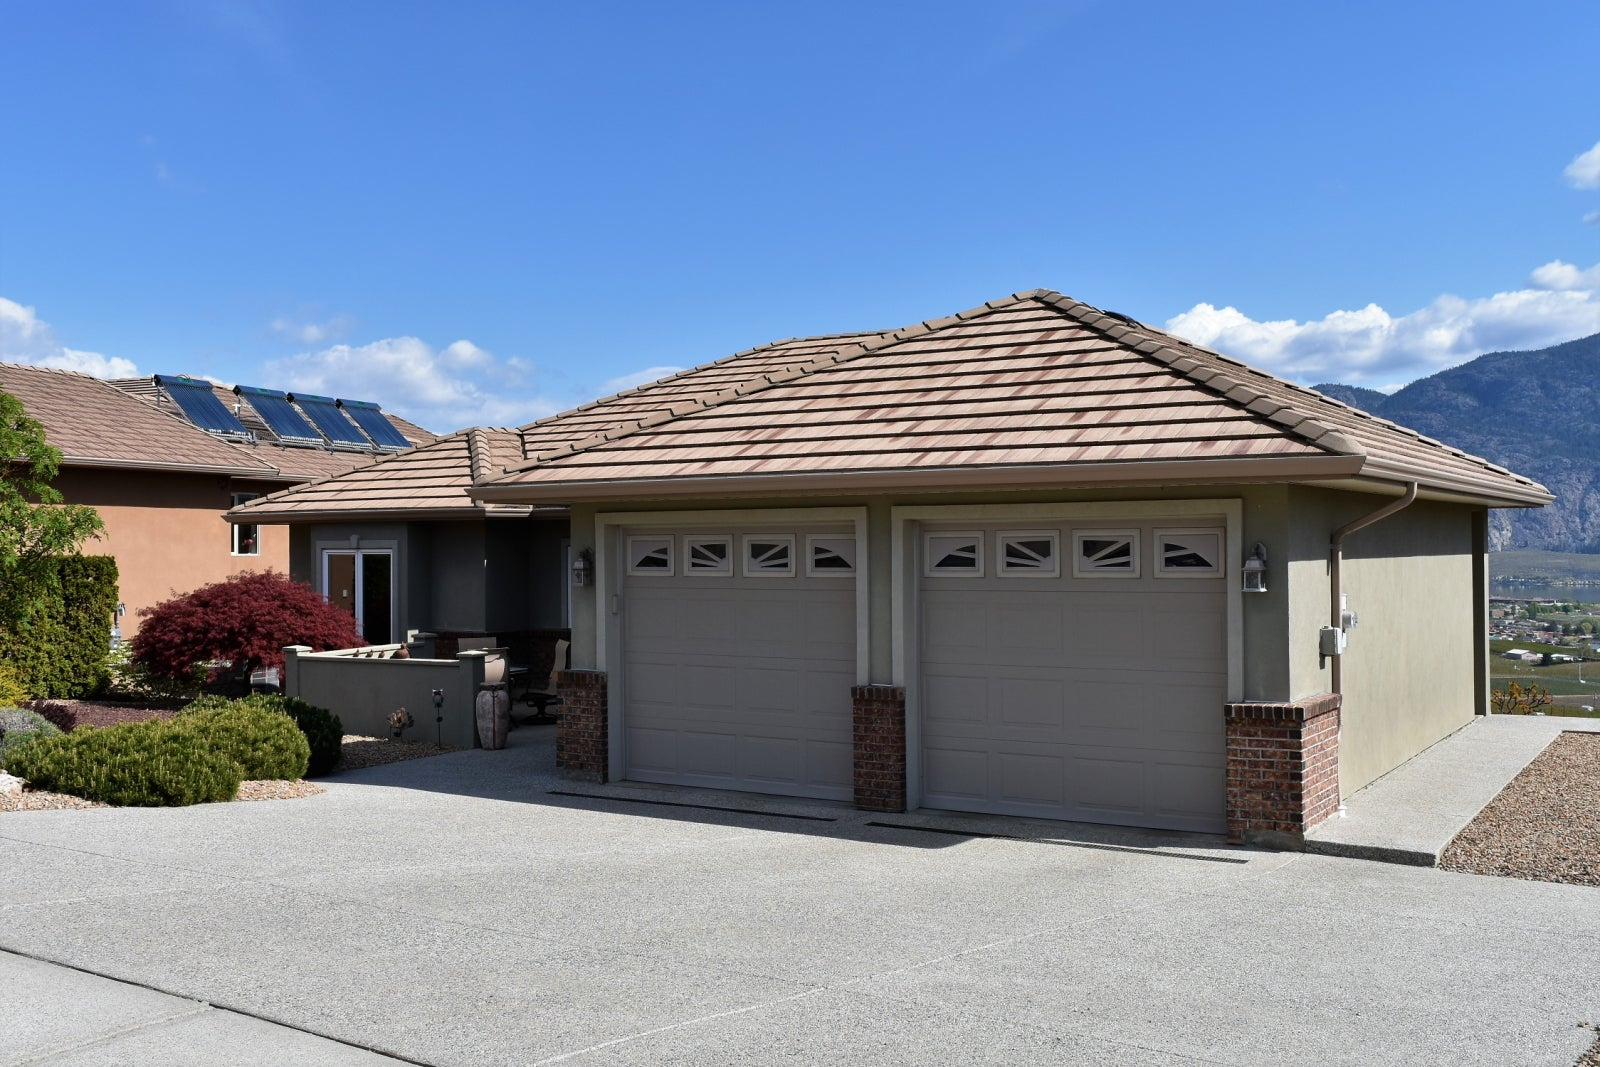 11715 Olympic View Drive - Osoyoos Single Family for sale, 4 Bedrooms (176846) #1